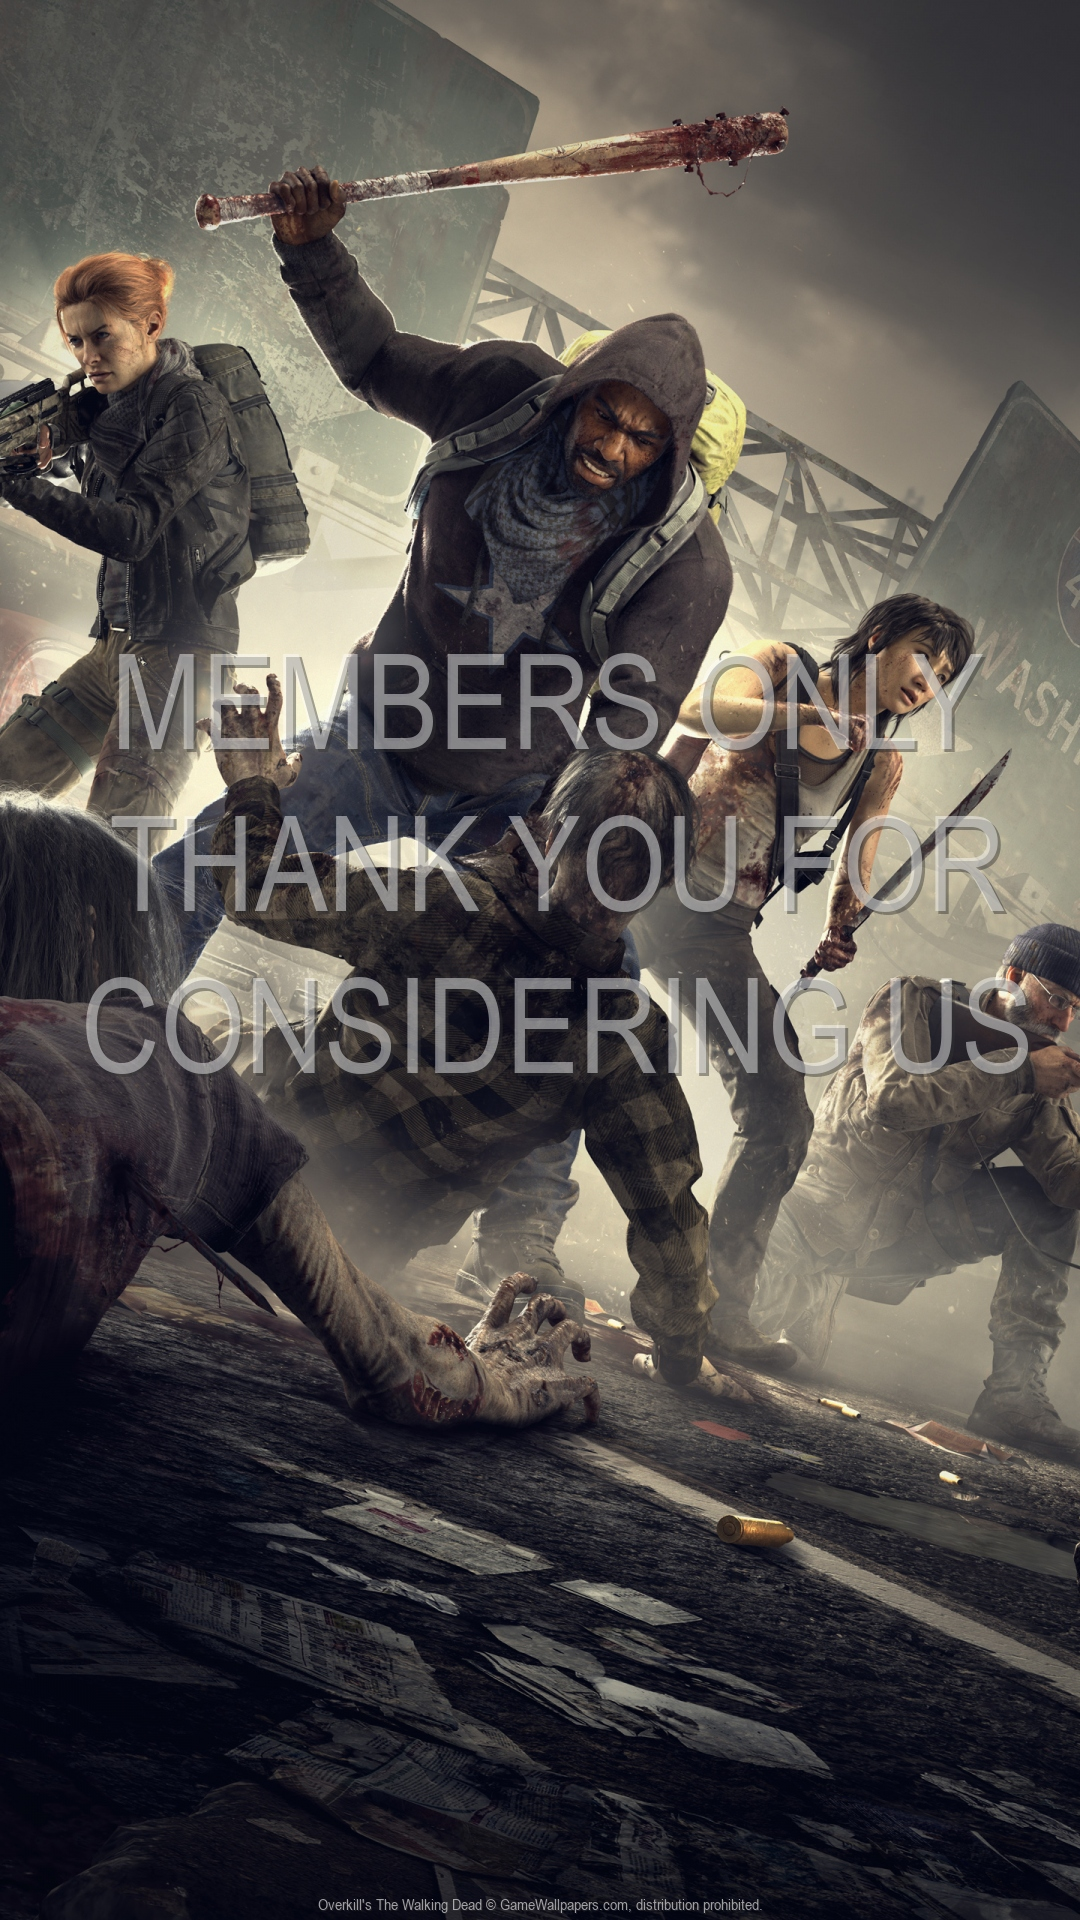 Overkill's The Walking Dead 1920x1080 Mobile wallpaper or background 01